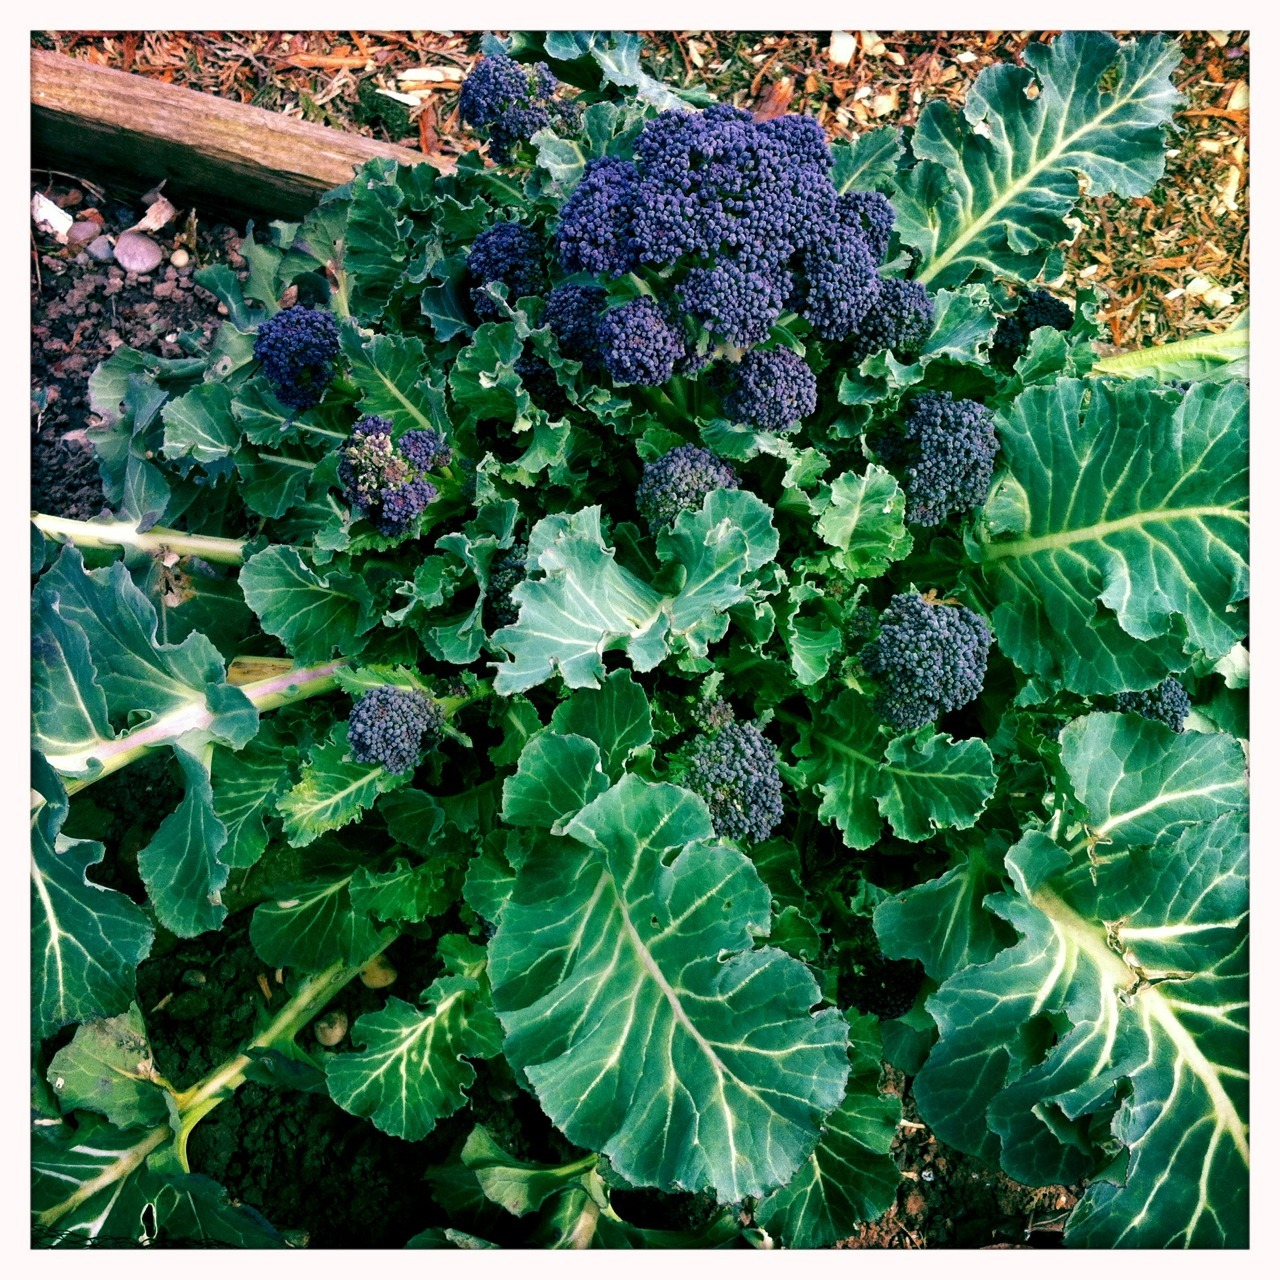 Purple sprouting broccoli The last of last year's planting is performing very well and filling the gap between winter and spring crops. I still have some improvements to make, but now have a proper supply of of fresh vegetables every day of the year. The recent very cold weather, snow and strong winds have battered most of the leaves beyond pleasant eating, but the chickens love them. After I've cut this central head, many more side shoots will be ready in a few weeks time. I'll be serving this later alongside some wild garlic and mushroom risotto. It's very satisfying to be eating a meal that includes so much home produce even at this lean time of year.